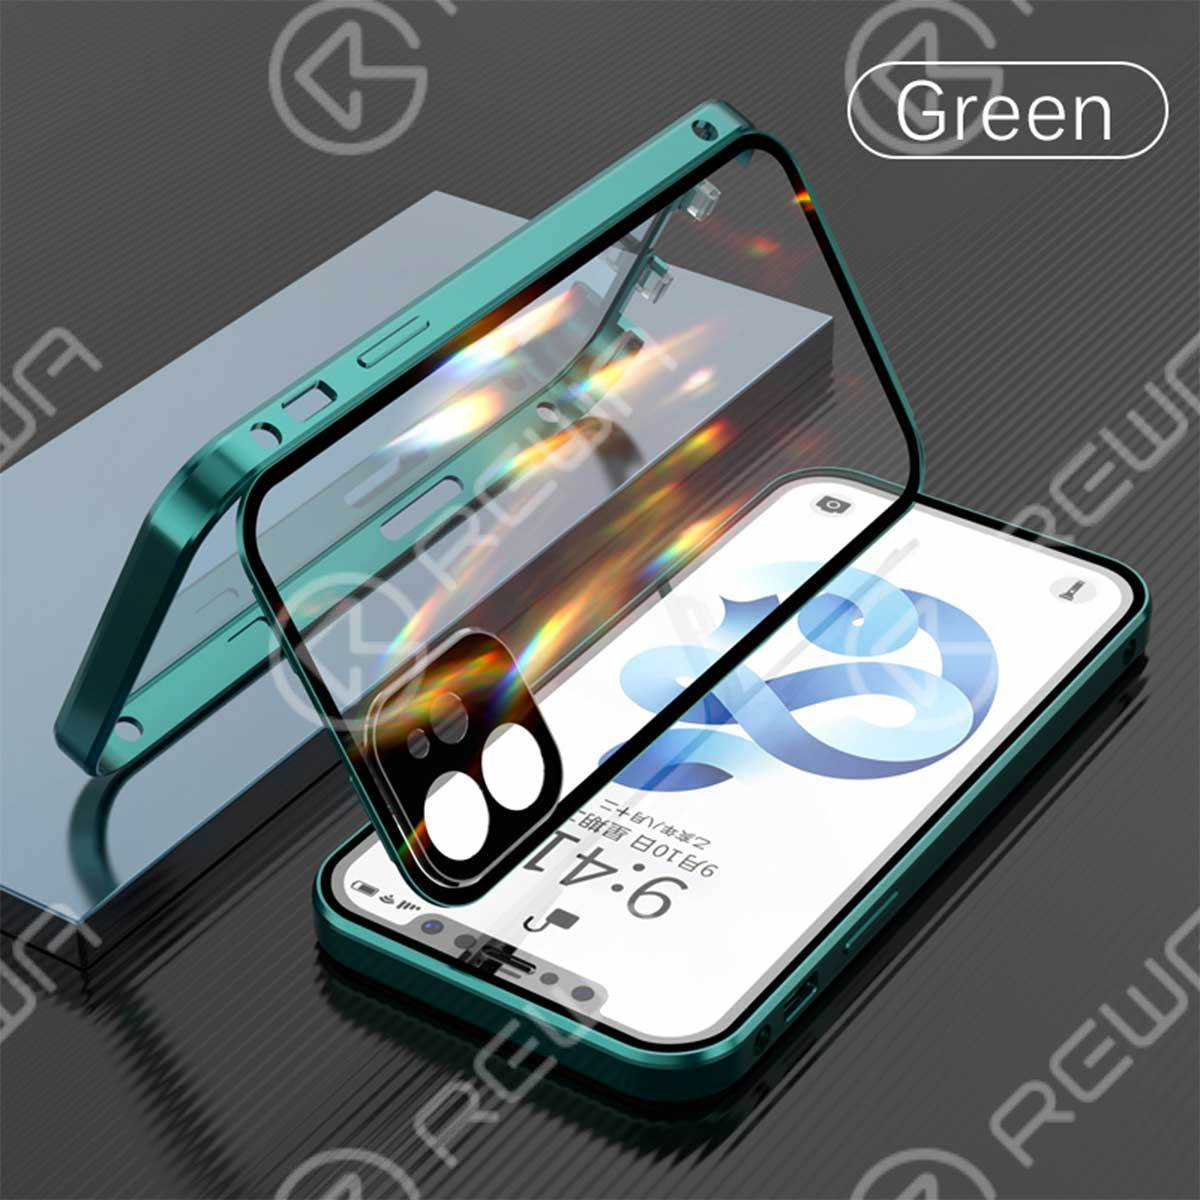 Double-Sided Buckle Phone Case With Camera Lens Protector For iPhone 7-12 Pro Max (Green)